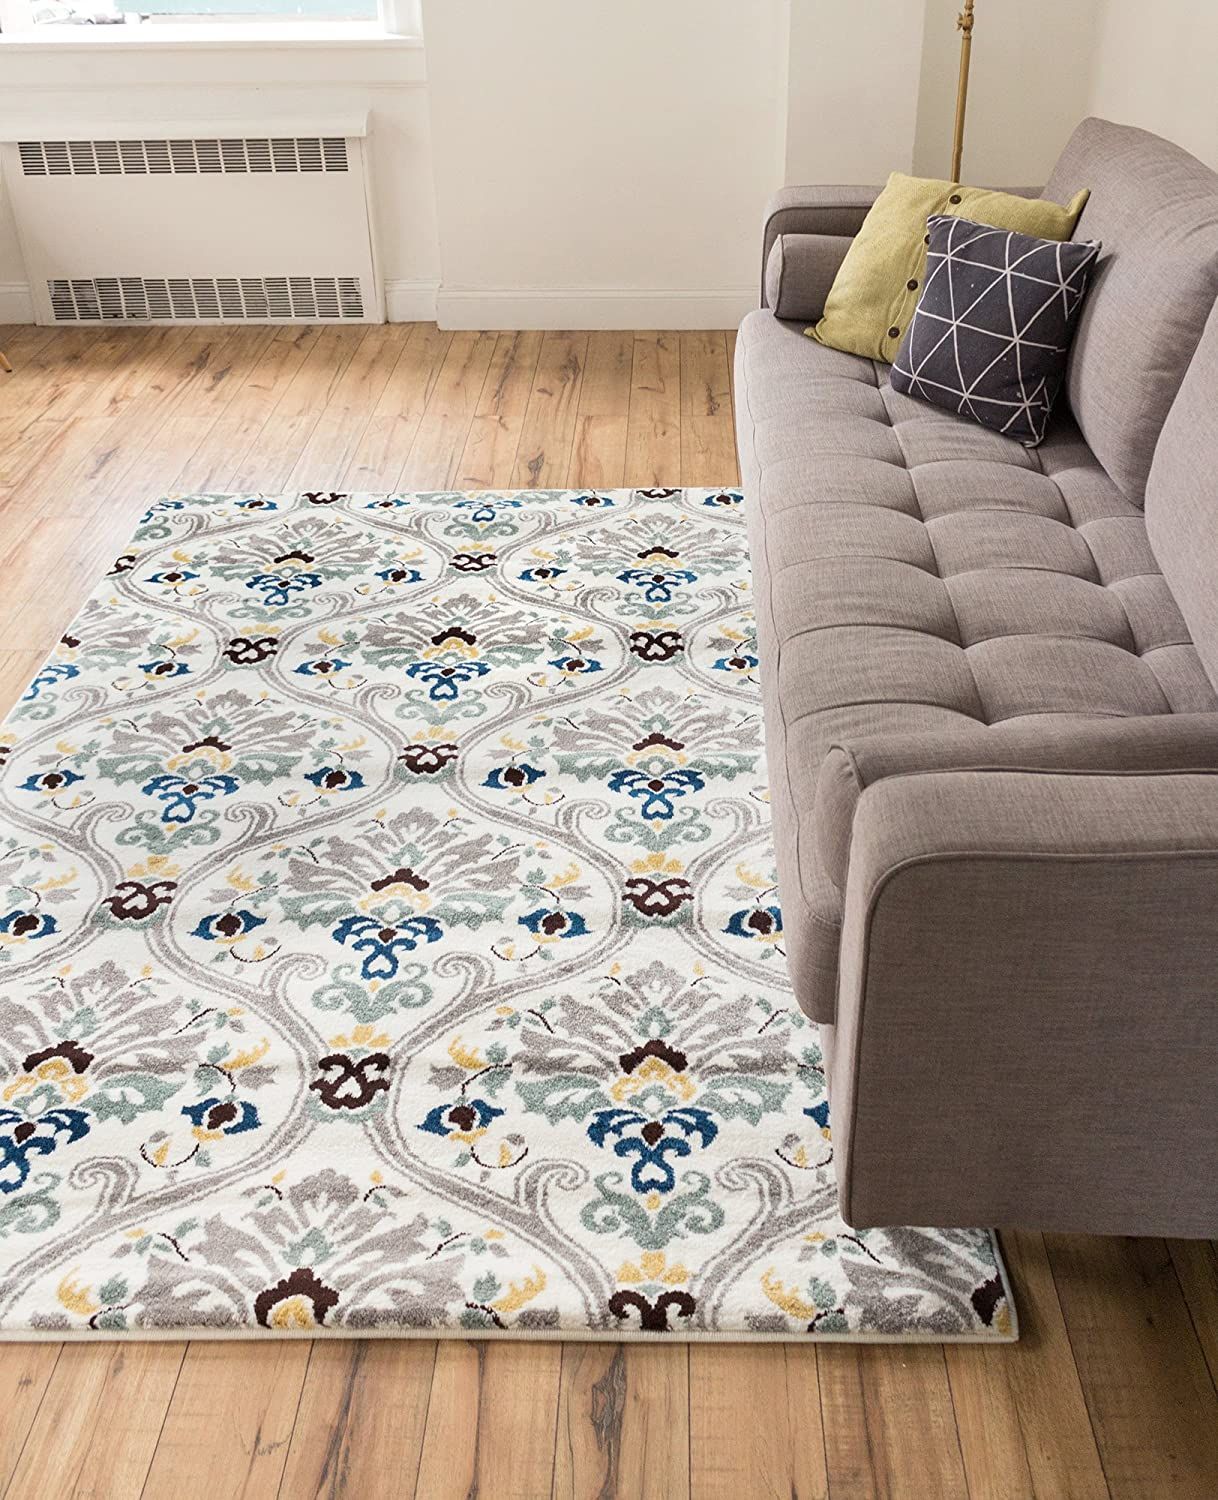 Amazon Com Ogee Waves Lattice Grey Gold Blue Ivory Floral Area Rug 3x5 3 3 X 4 7 Modern Oriental Geometric Soft Pile Contemporary Carpet Thick Plush Stain Fade Resistant Bedroom Living Dining